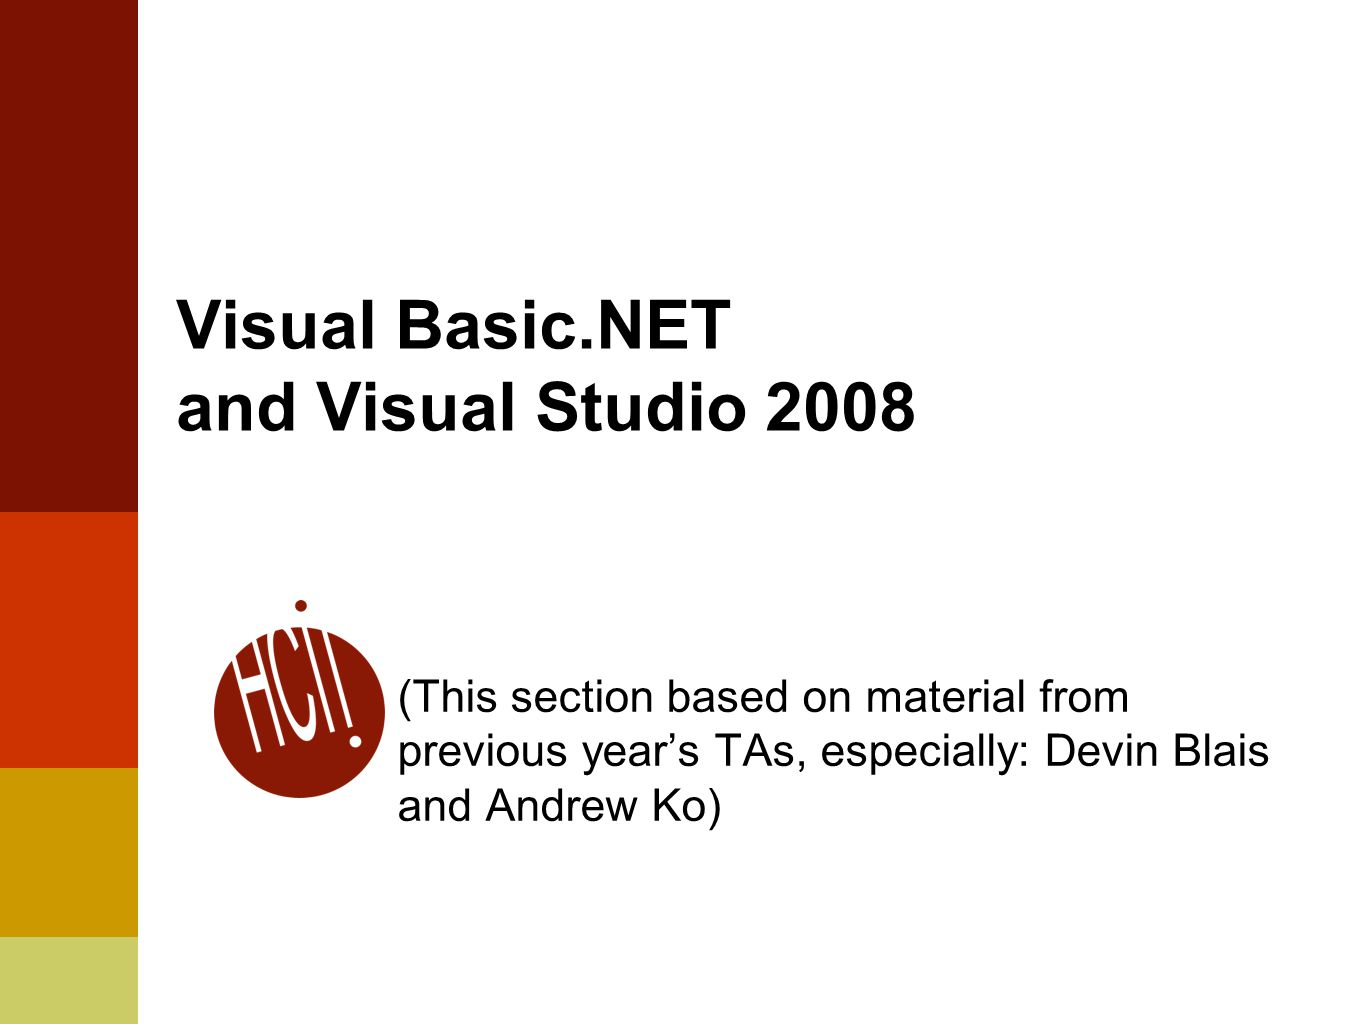 Visual Basic.NET and Visual Studio 2008 (This section based on material from previous year's TAs, especially: Devin Blais and Andrew Ko)